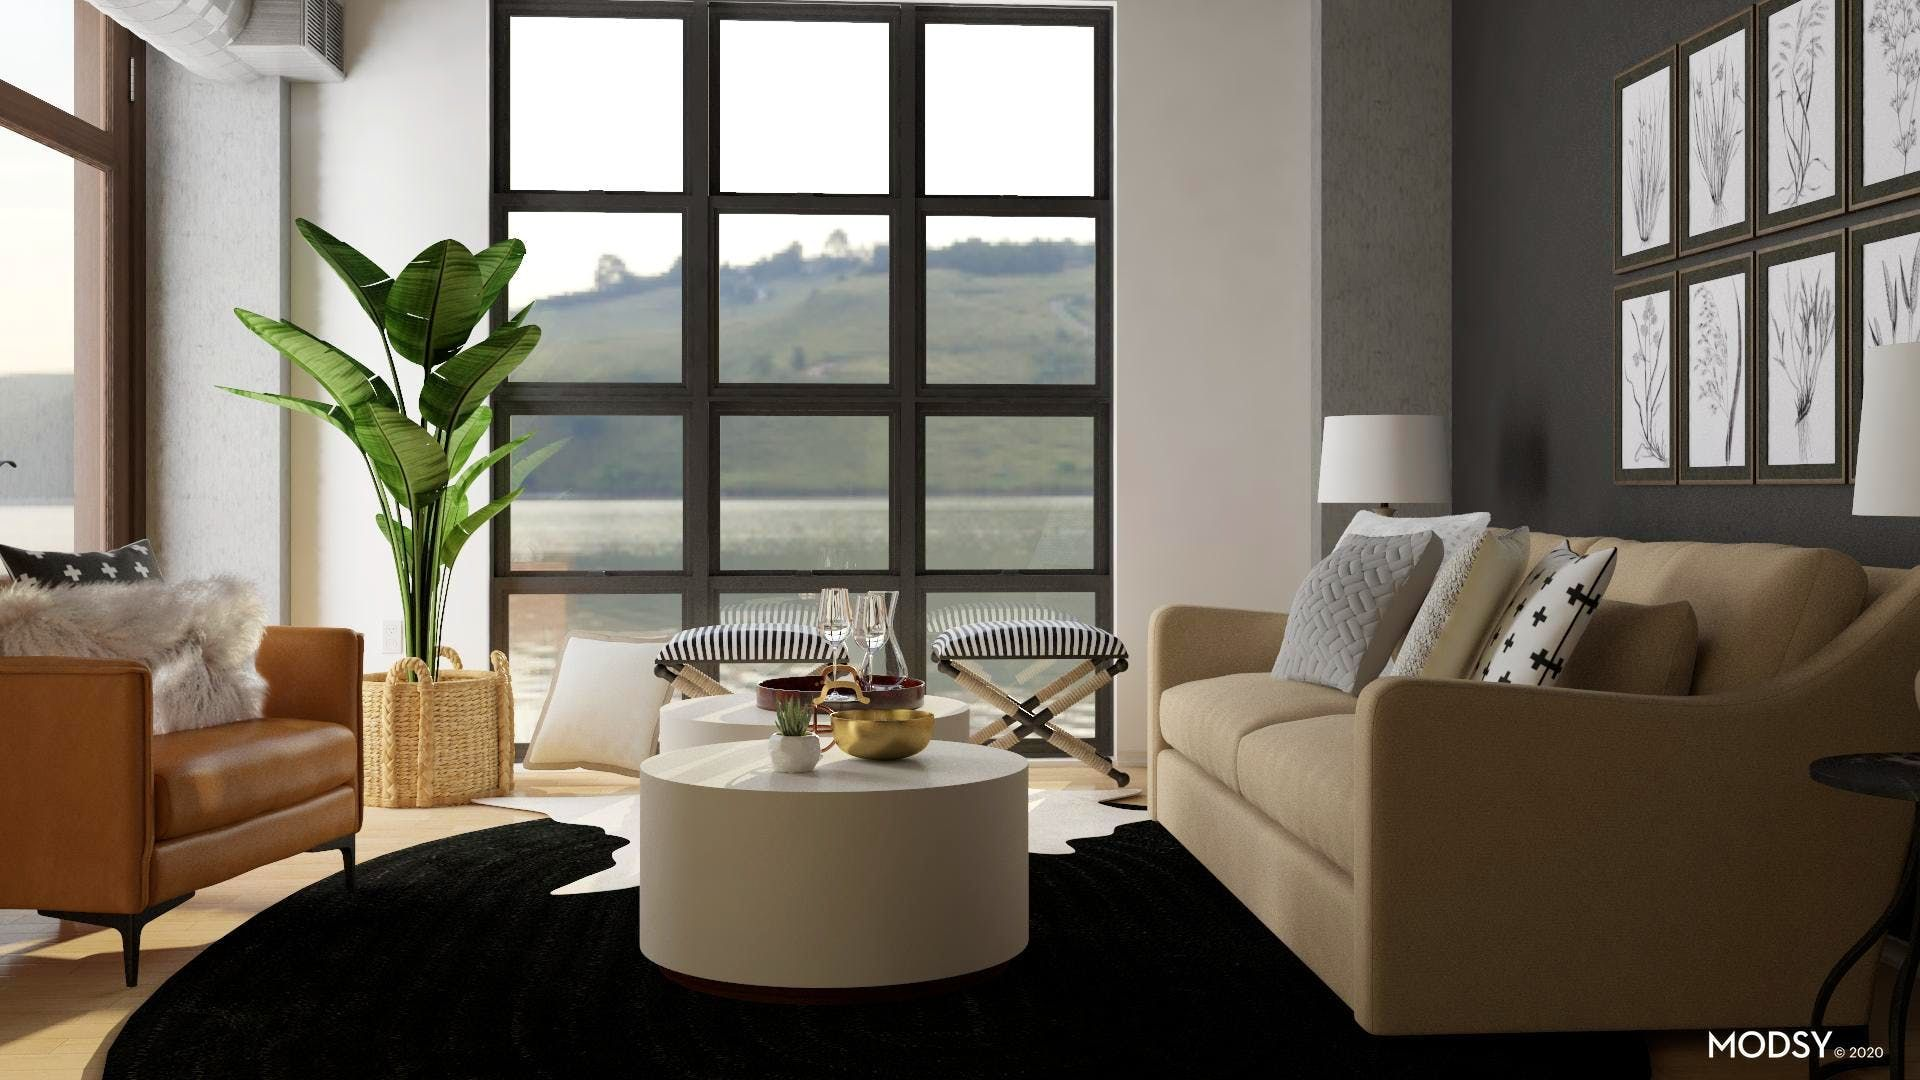 Design Ideas And Styles From Modsy Designers In 2020 Transitional Style Living Room Living Room Designs Transitional Living Room Design #transitional #design #living #room